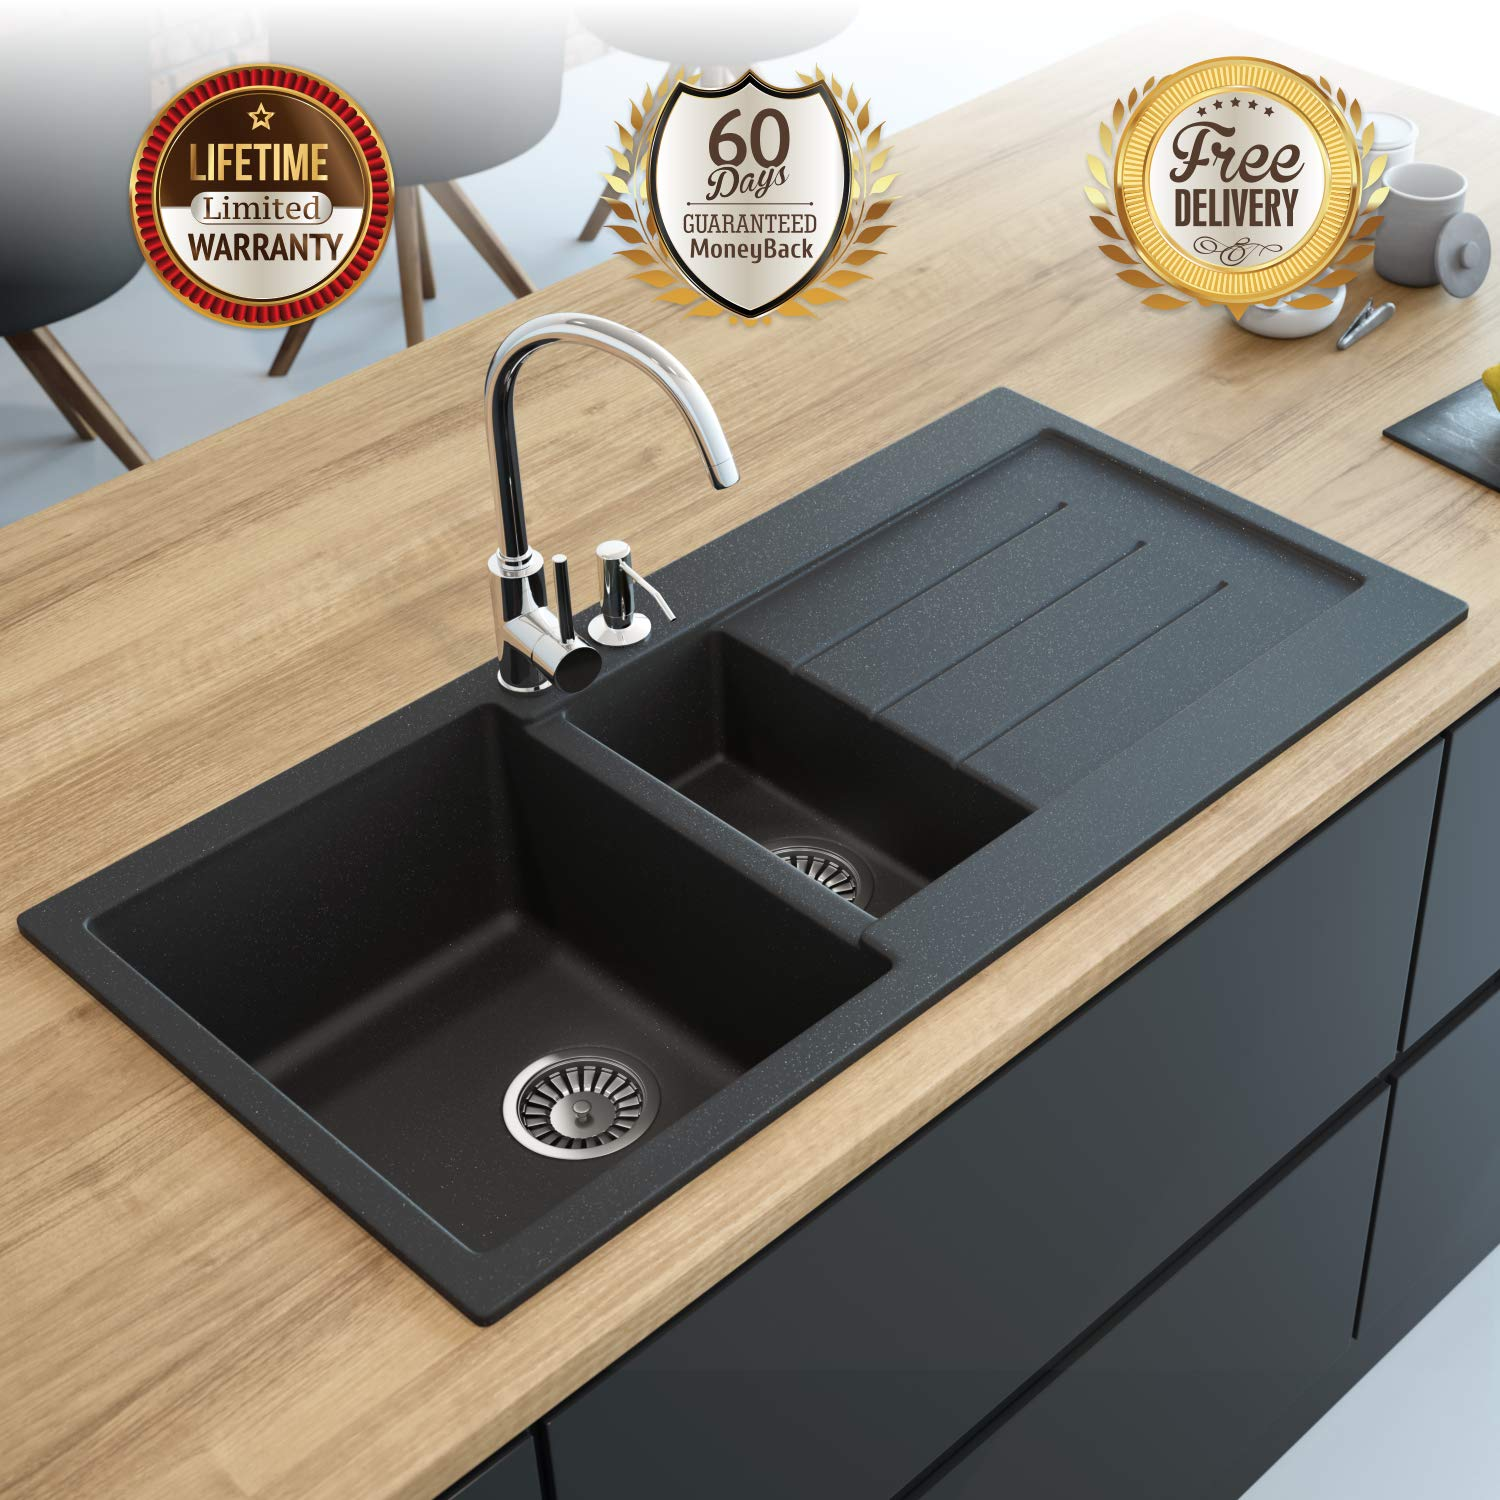 Black Kitchen Sink Lavello Decoro 150LT 39 Granite Sink Composite Double Bowl Big Range of Kitchen Sinks Drop In Top Mount Drainboard Position Right